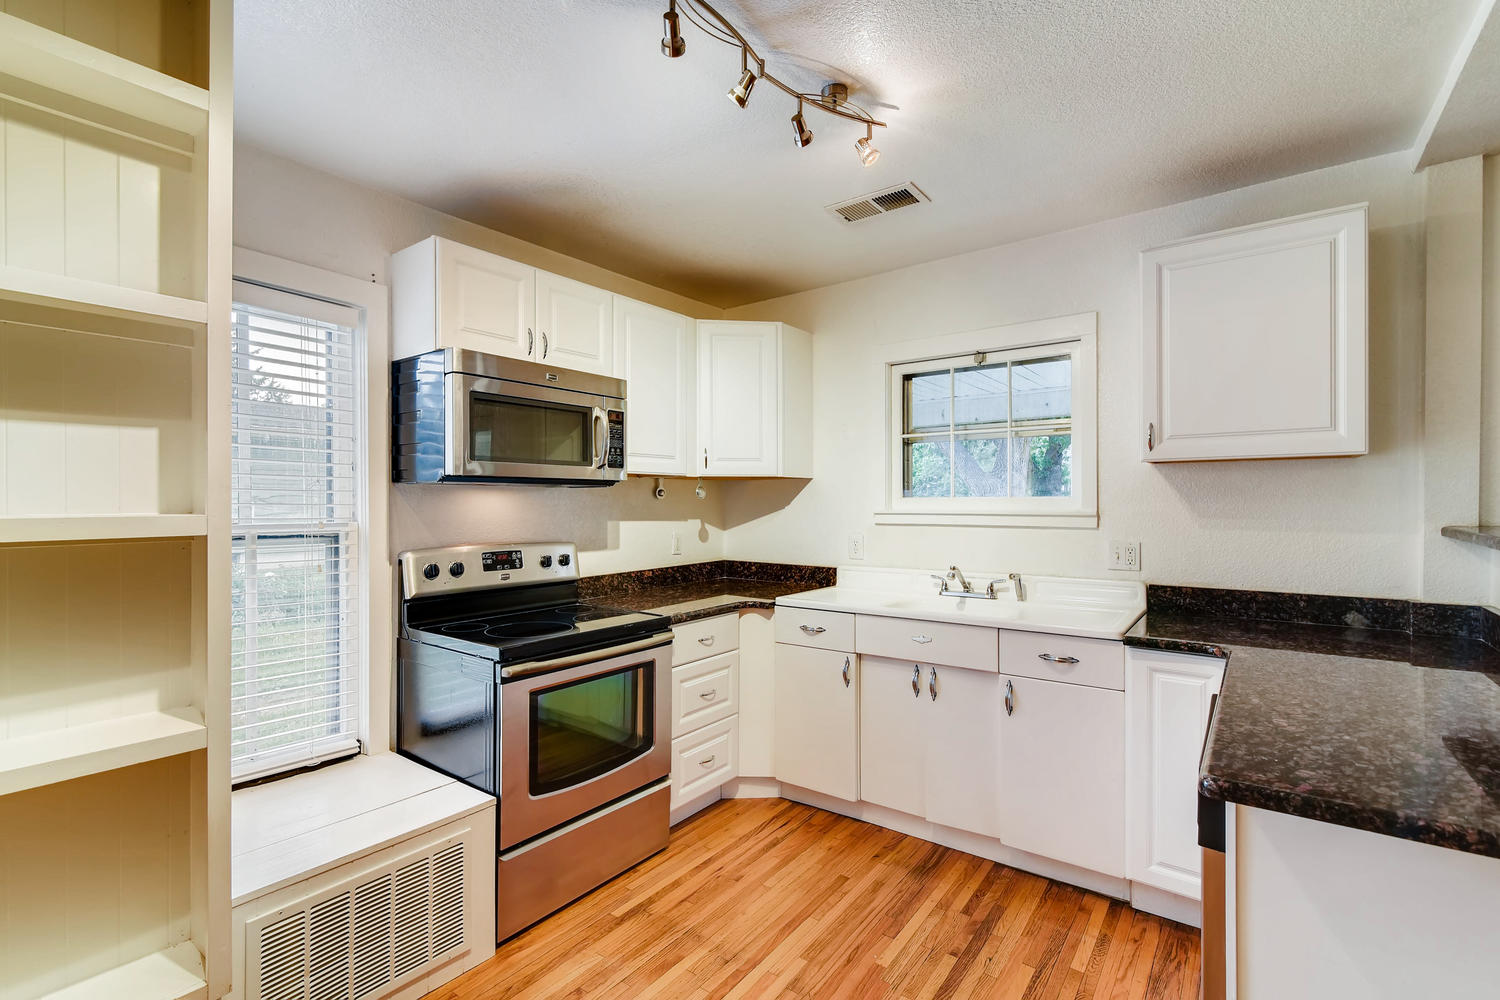 REAL ESTATE LISTING: 1201 E 1st Street Loveland CO Kitchen